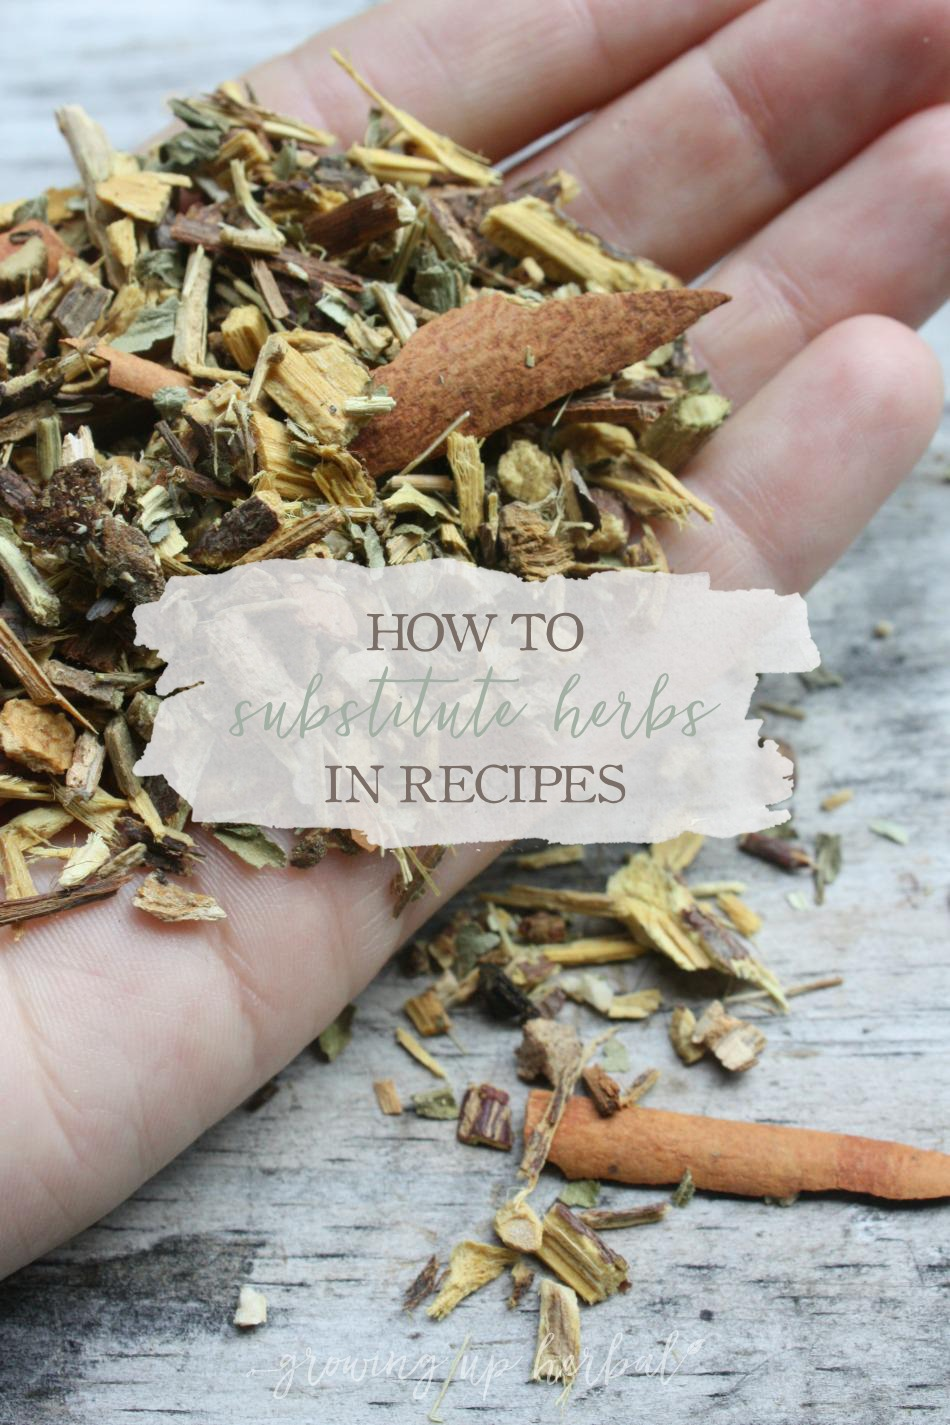 How To Substitute Herbs In Recipes   Growing Up Herbal   Missing an herb in a remedy? Here's how to substitute one herb for another.